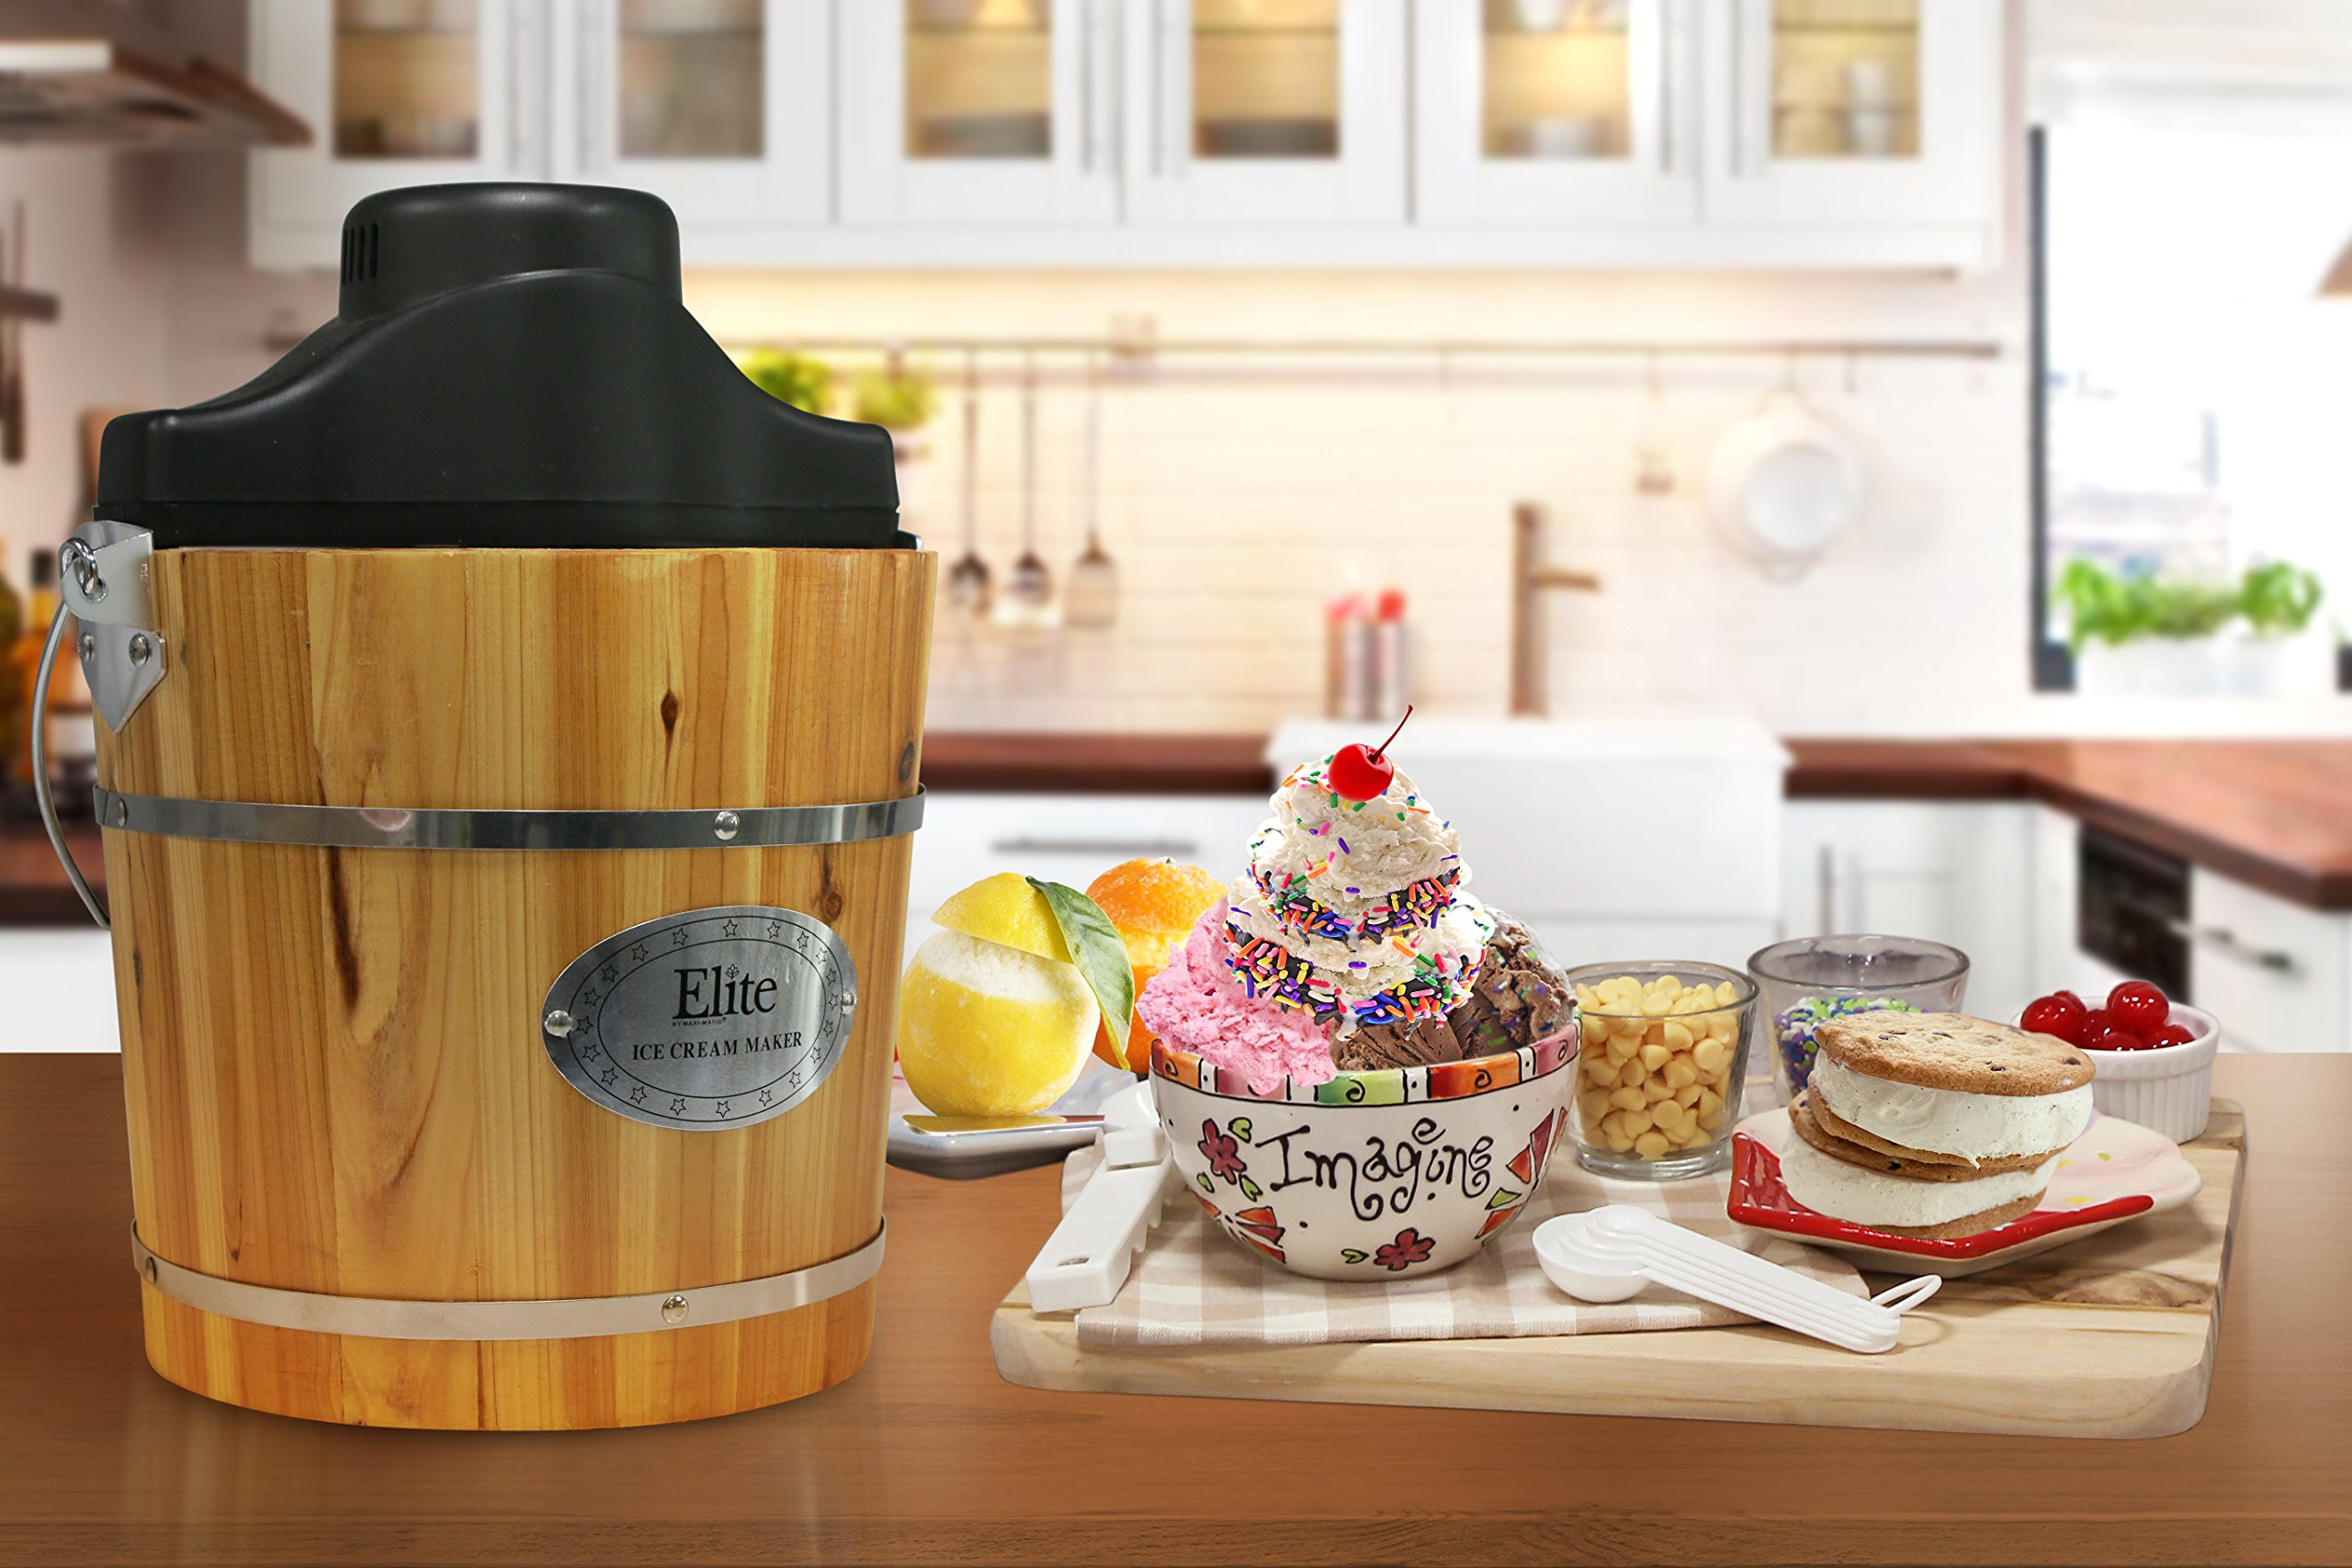 Elite Gourmet EIM-502 4 quart Old-Fashioned Ice Cream Maker with electric motor and hand crank, maple by Maxi-Matic (Image #8)